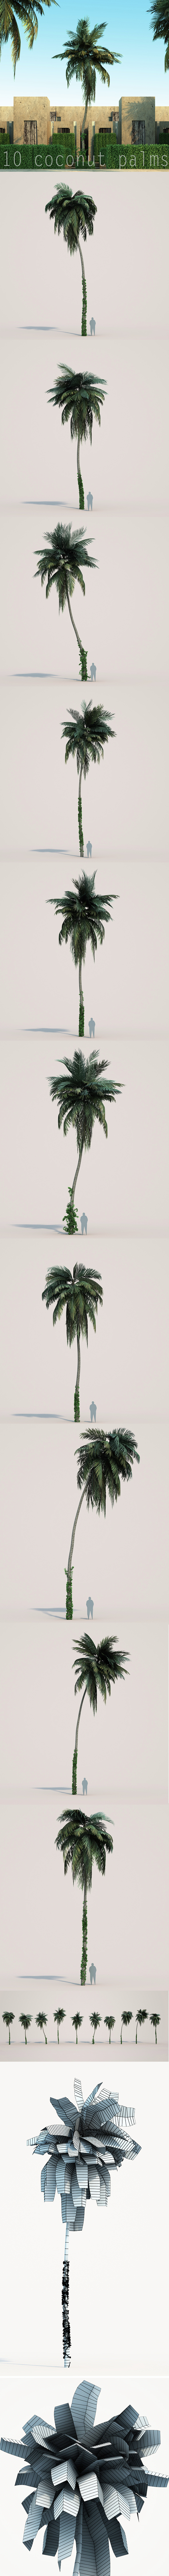 10 coconuts trees - 3DOcean Item for Sale